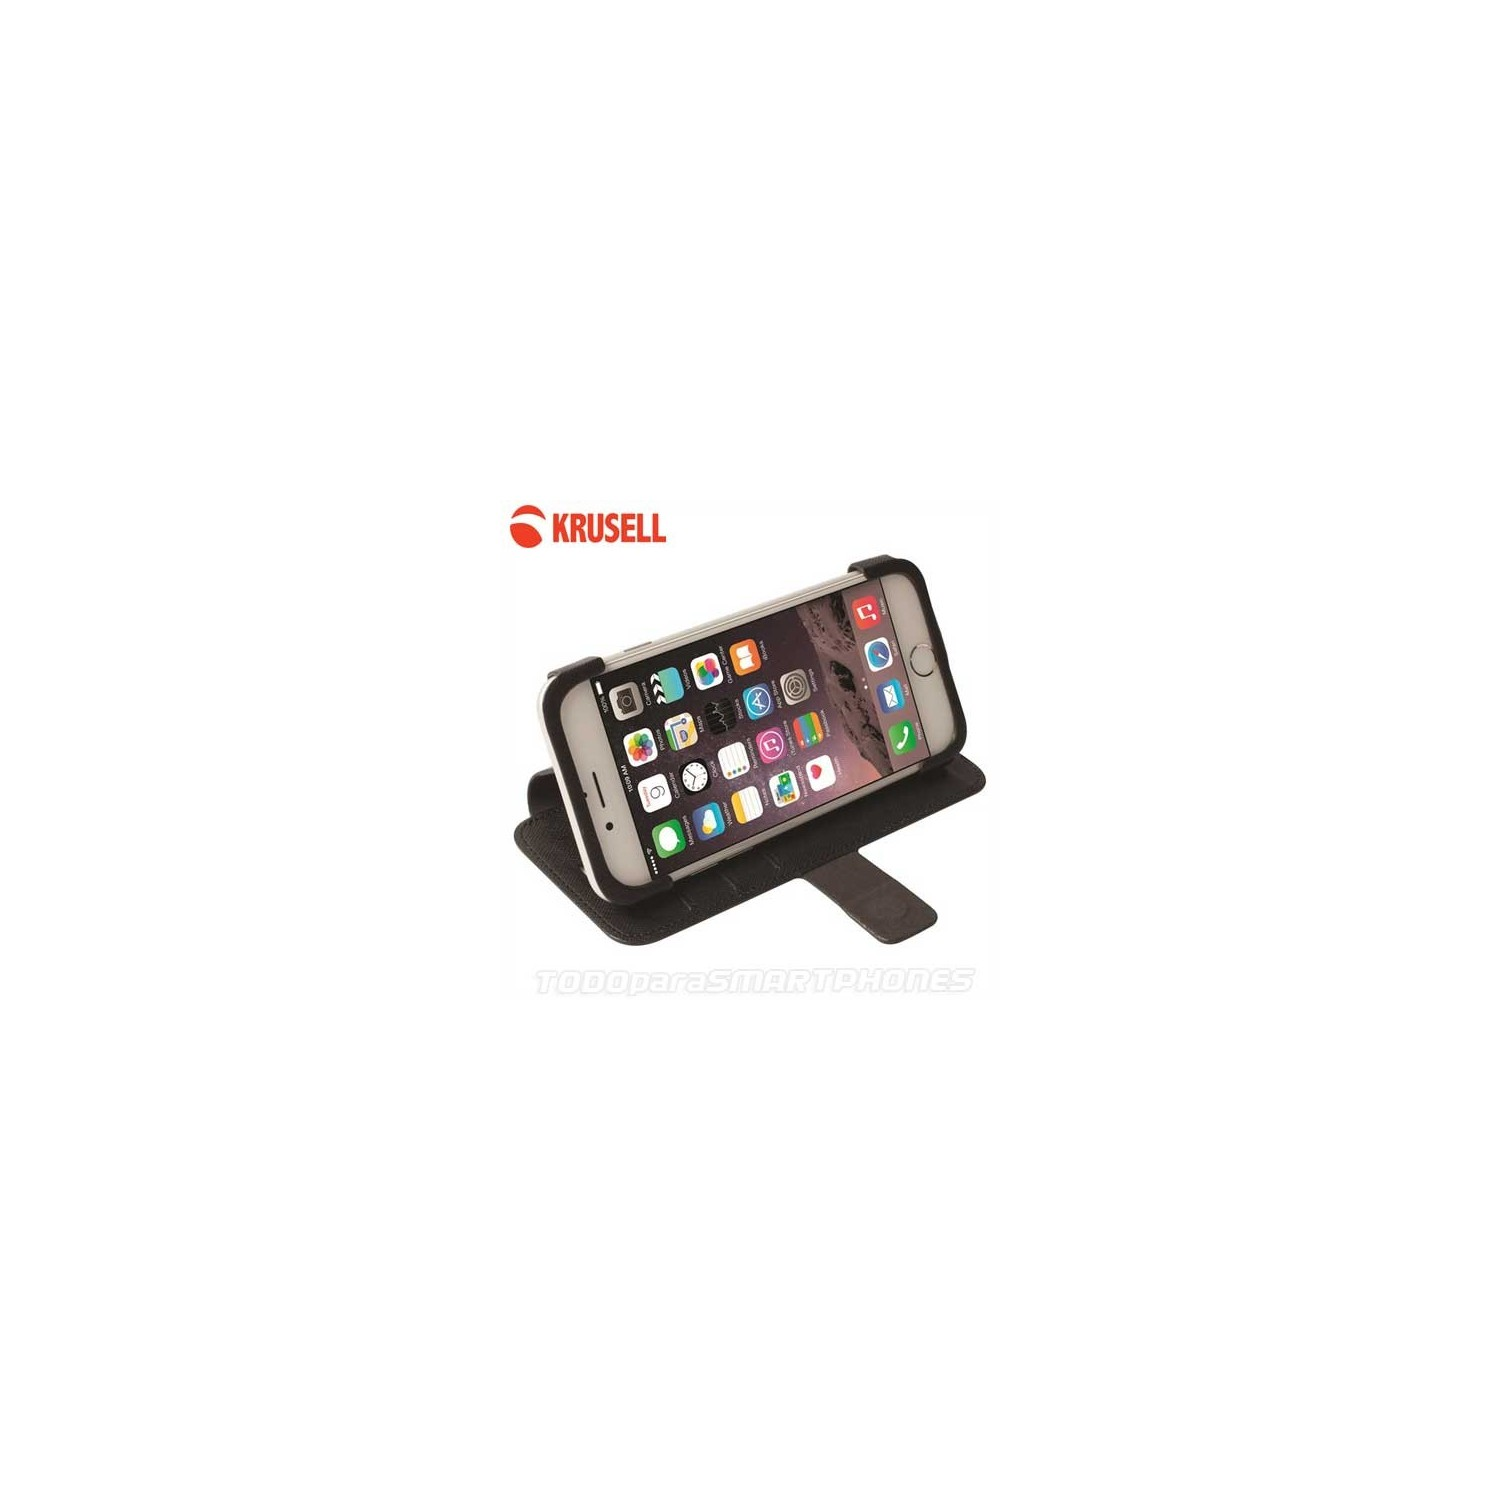 Case - Krusell Malmo FlipWallet for iPhone 6